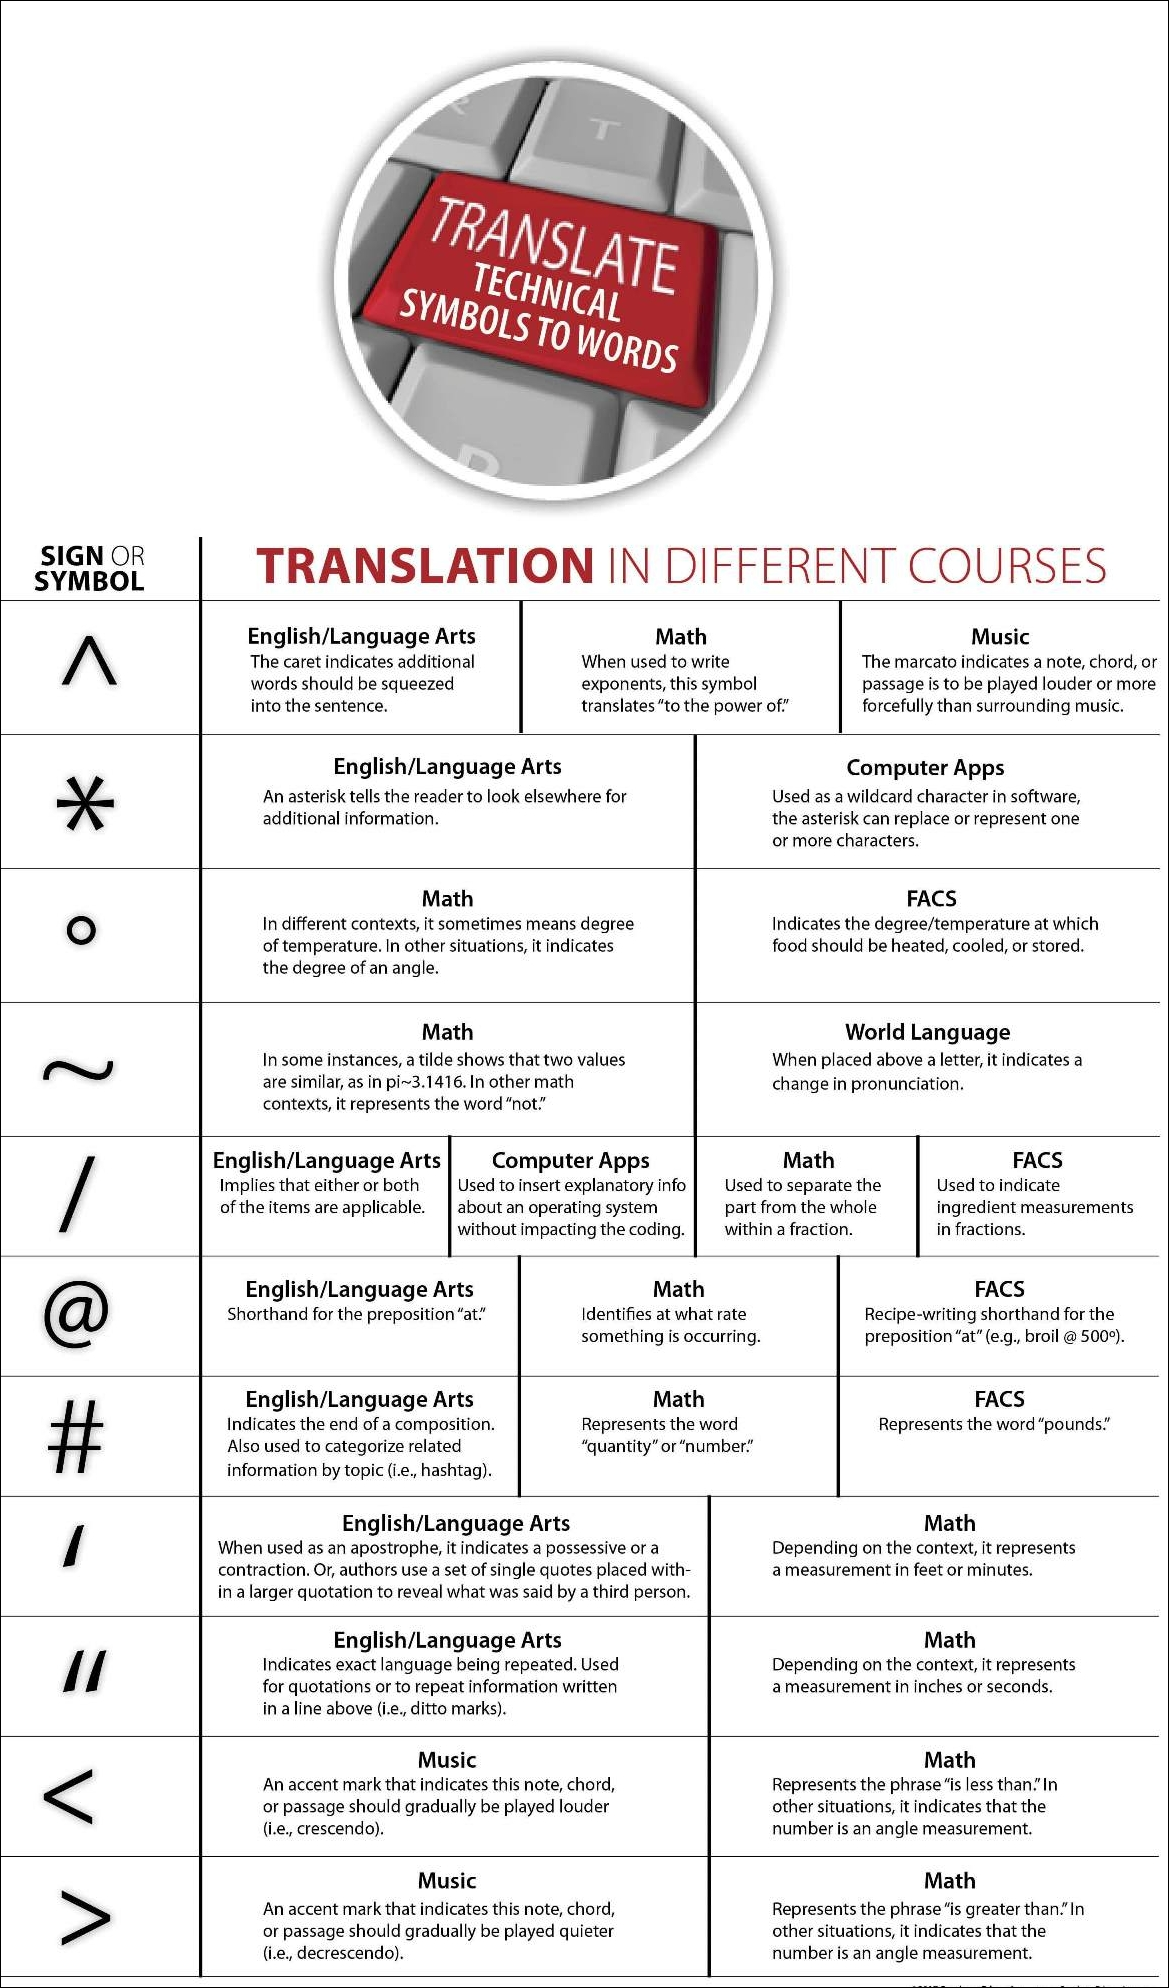 Translate Technical Symbols To Words